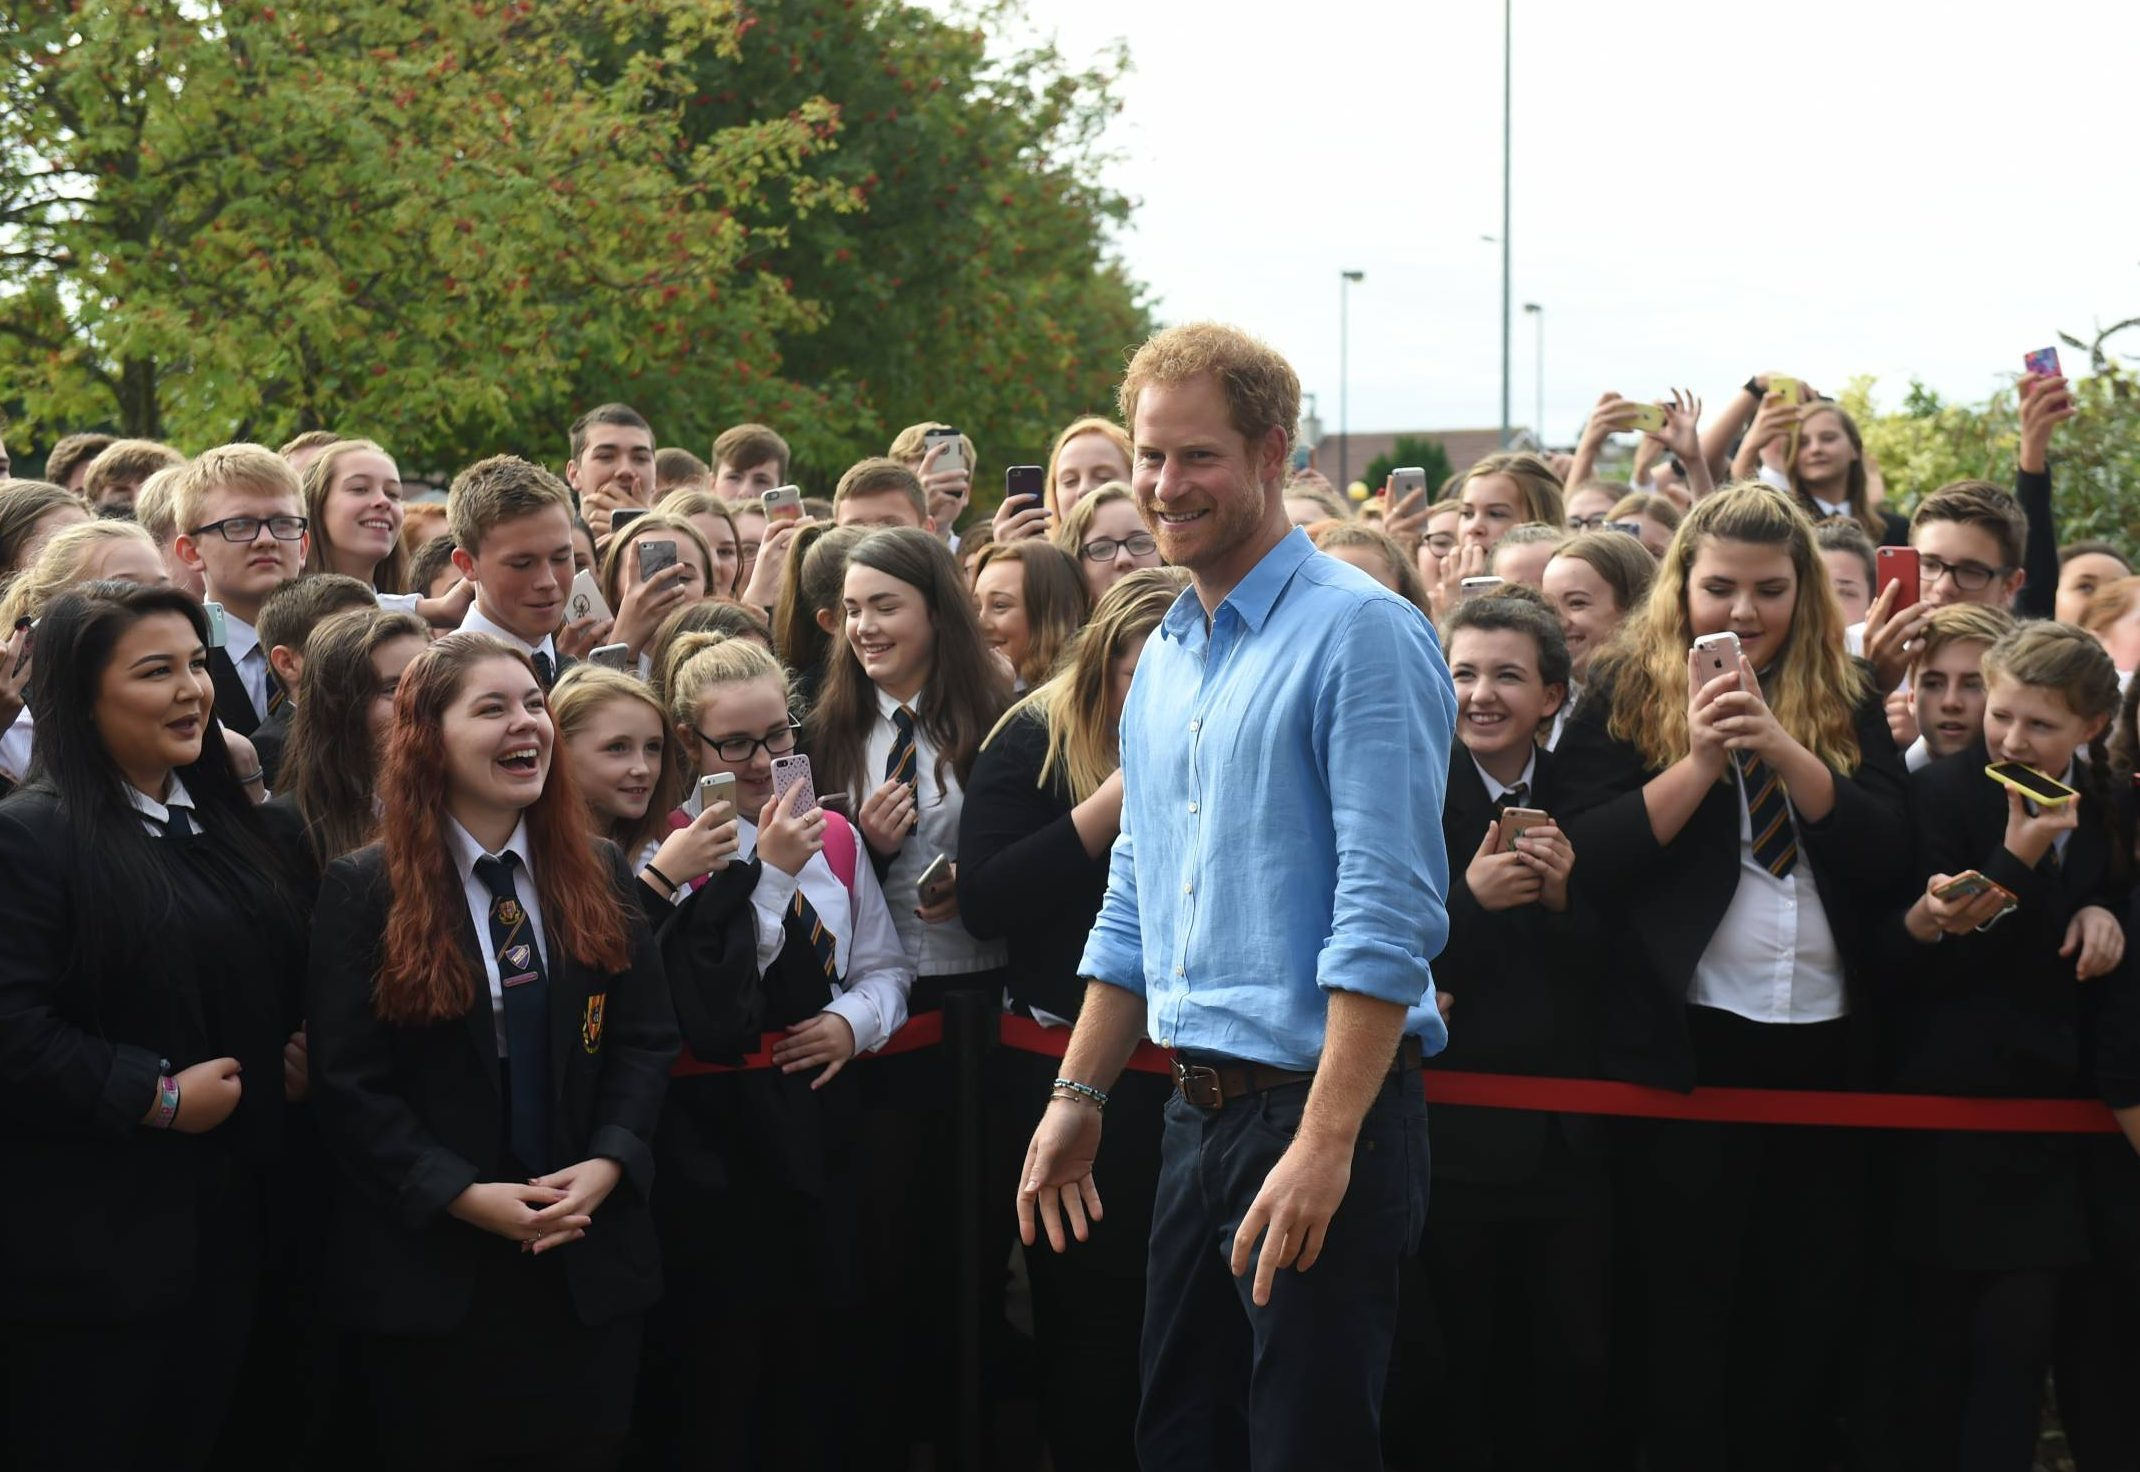 Prince Harry visited Mackie Academy in Stonehaven this morning.